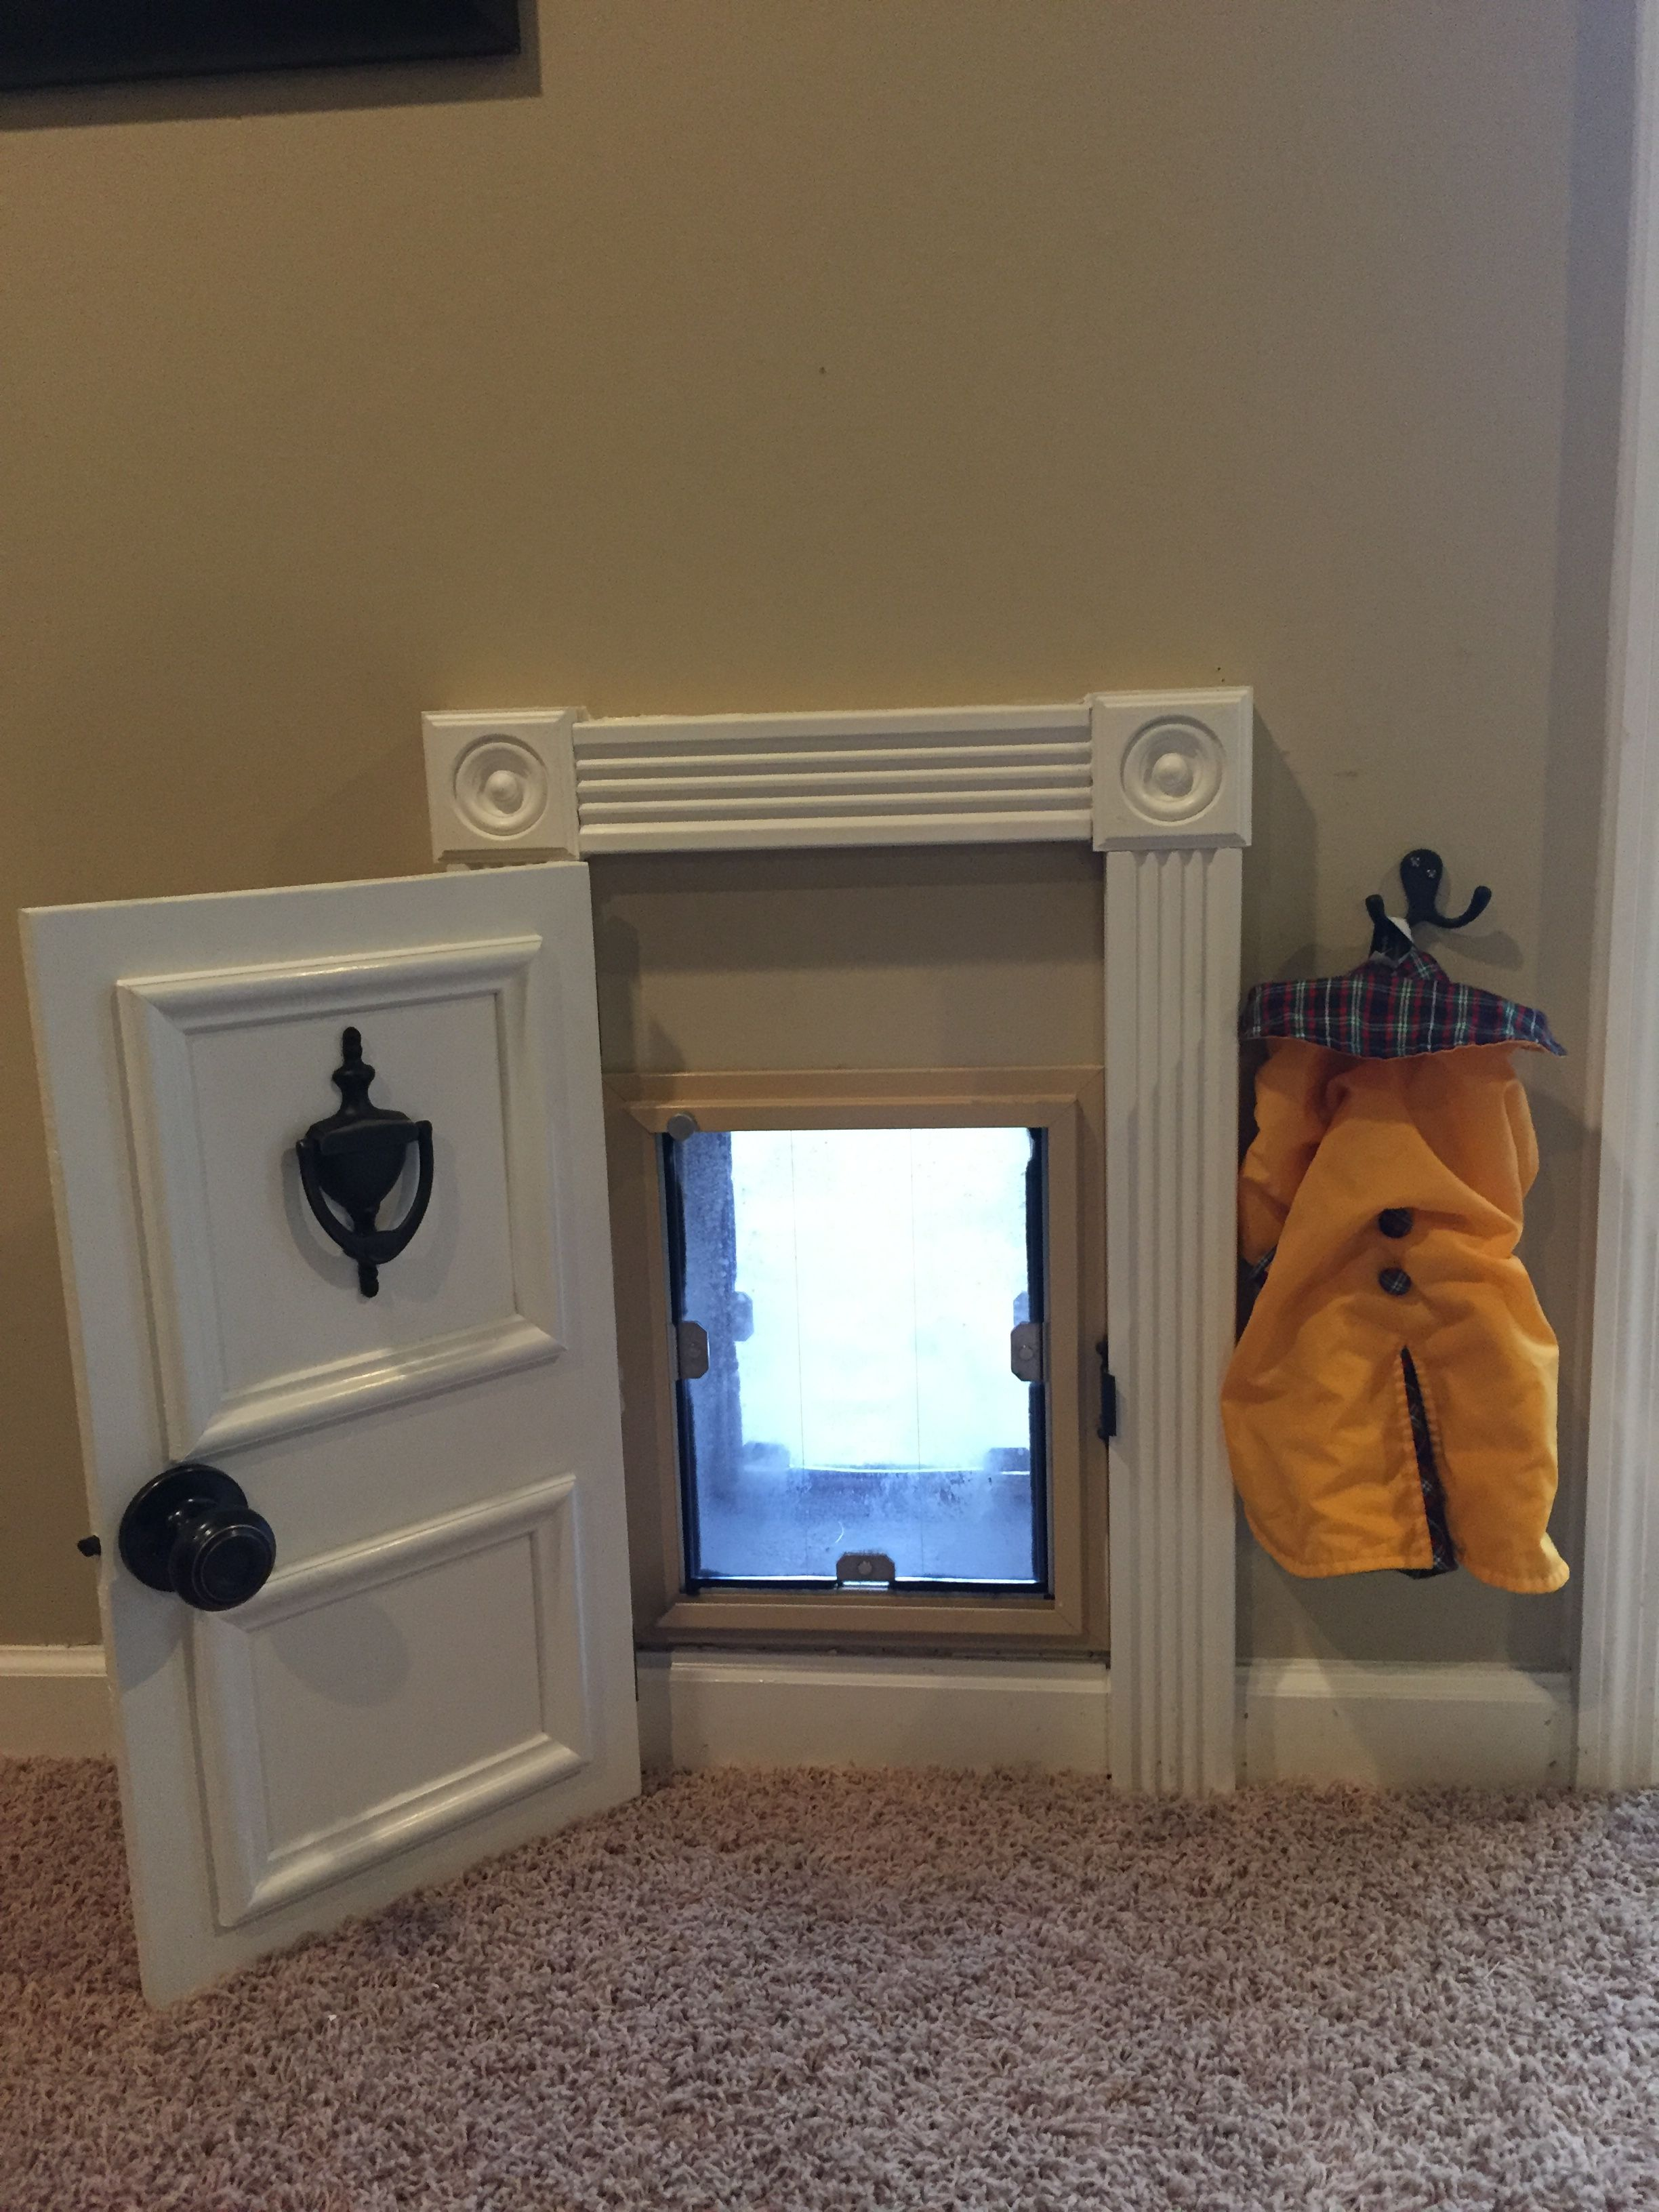 Our Westie loves her new doggy door! & Our Westie loves her new doggy door! | Doggy Door Ideas | Pinterest ...